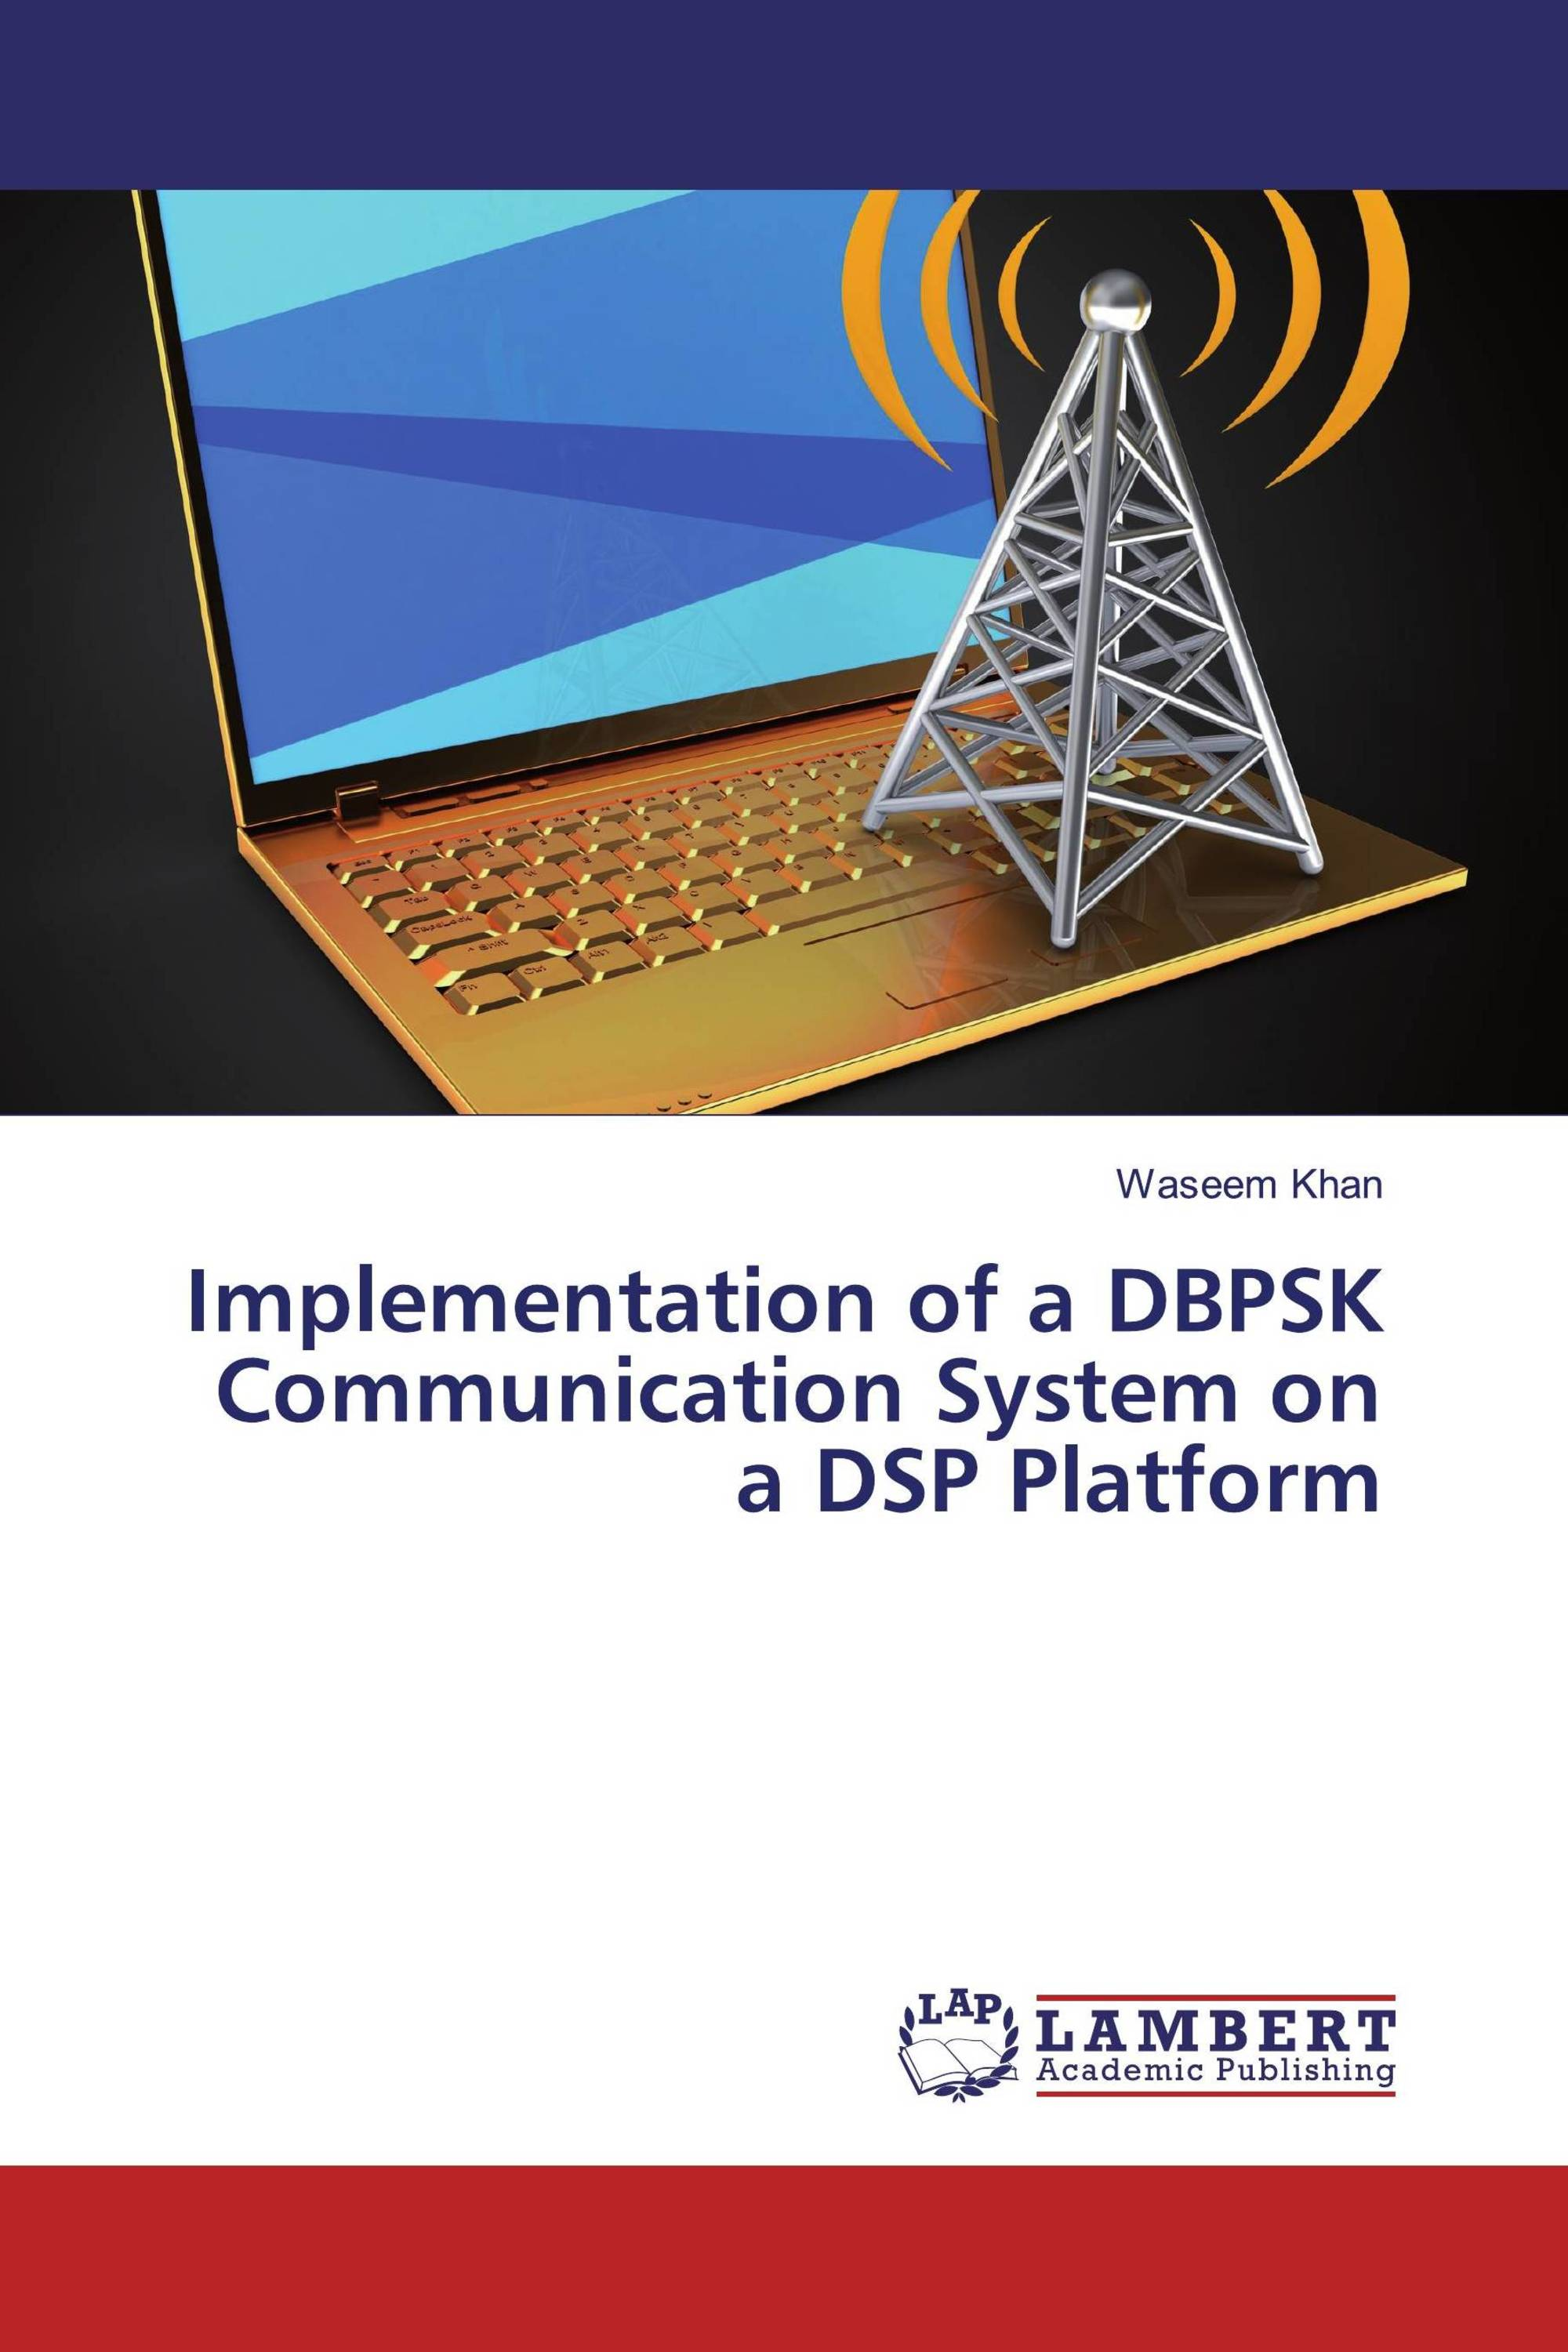 Implementation of a DBPSK Communication System on a DSP